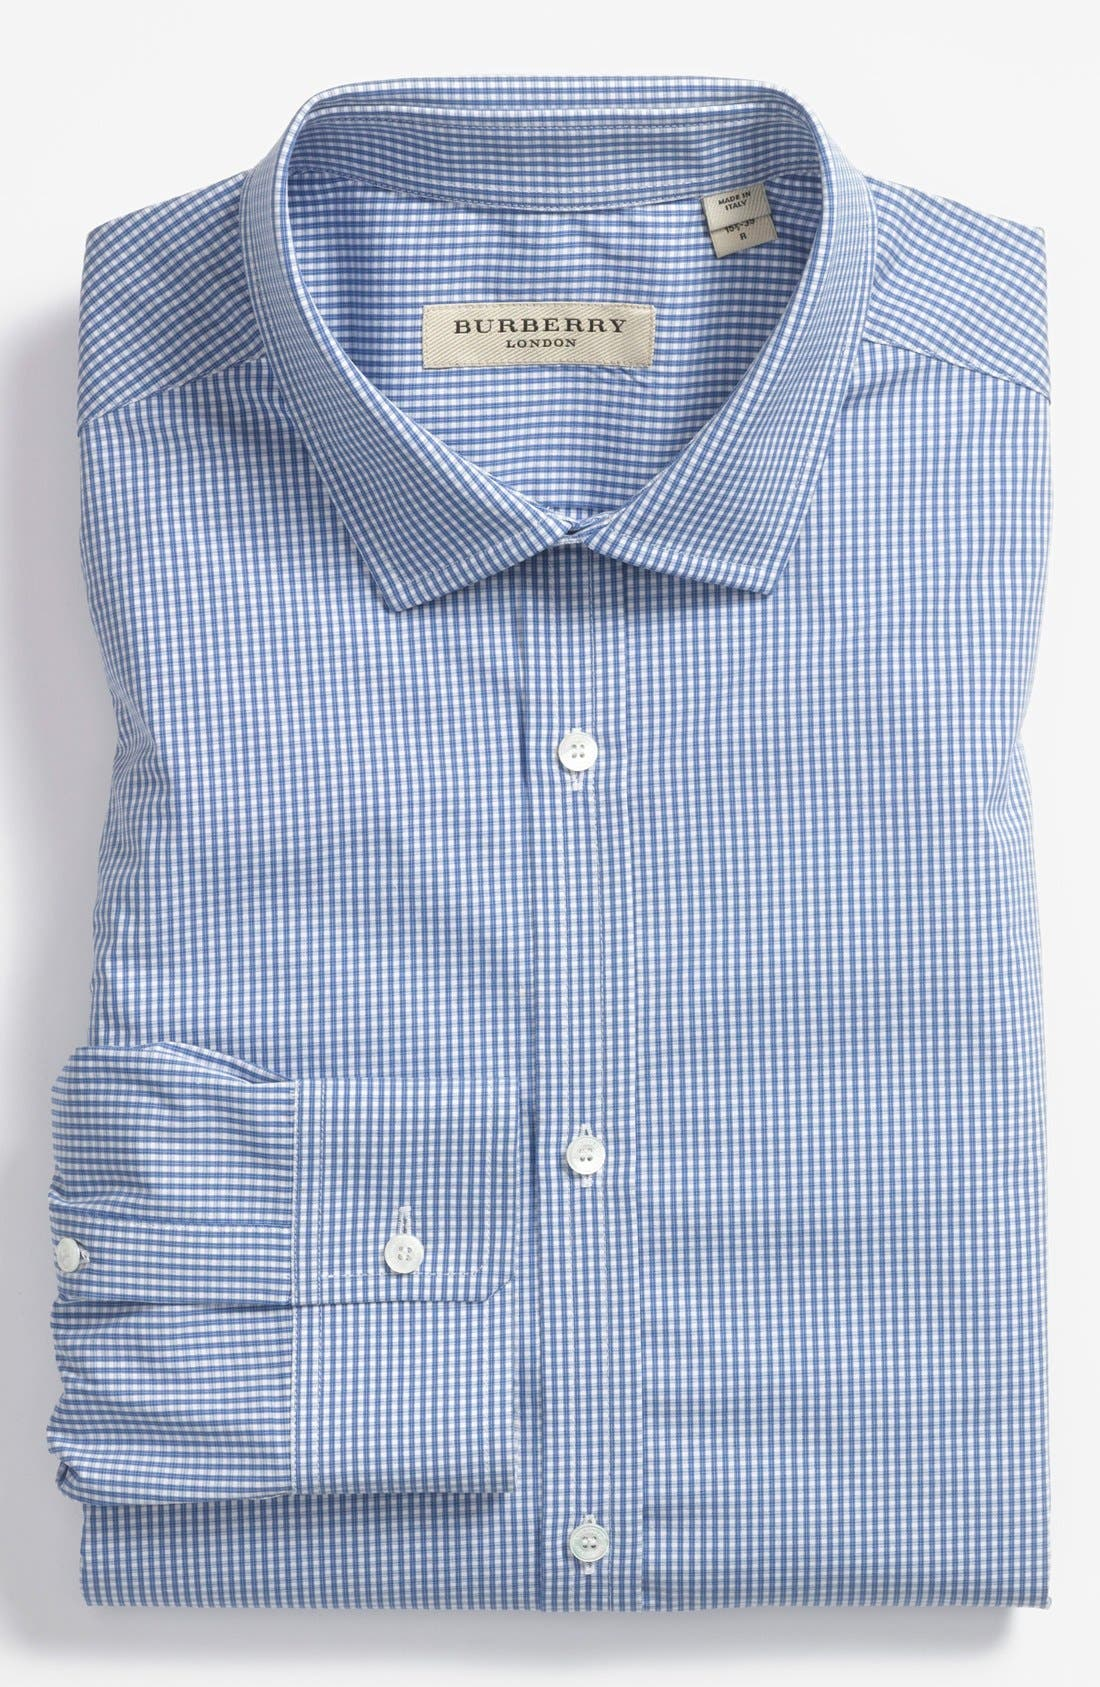 Main Image - Burberry London Check Tailored Fit Dress Shirt